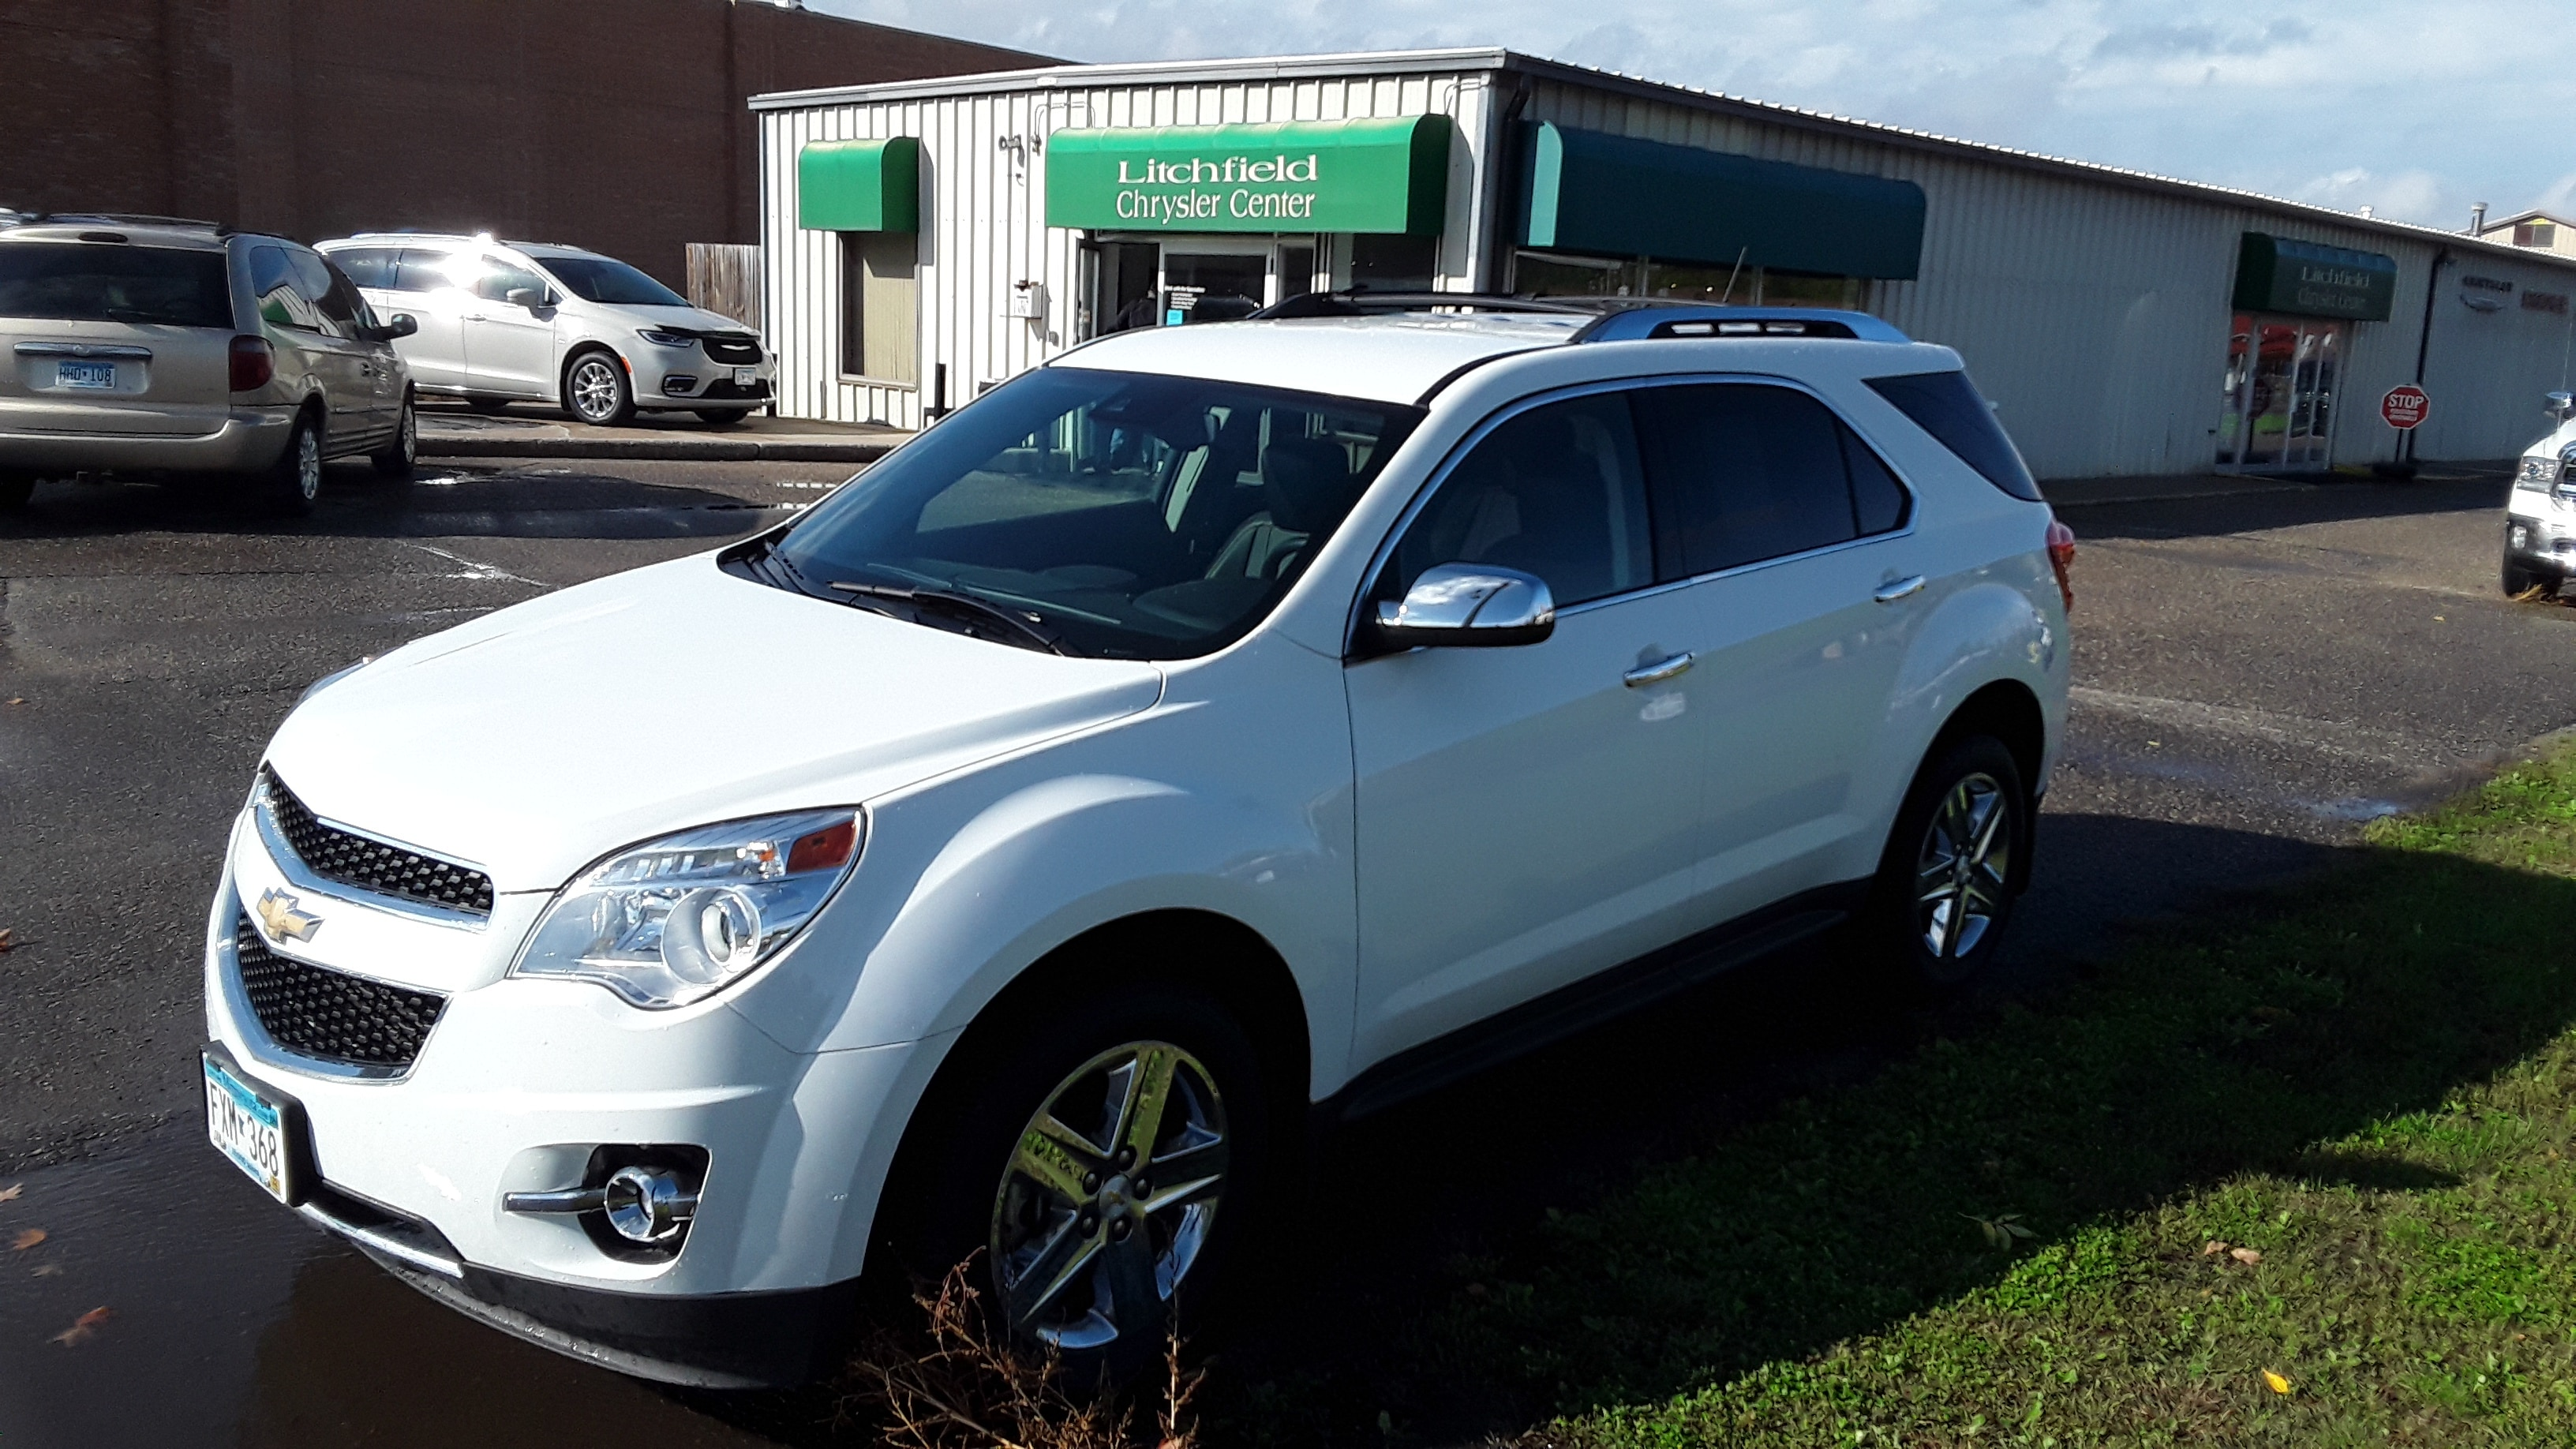 Used 2014 Chevrolet Equinox LTZ with VIN 2GNFLHE34E6225854 for sale in Litchfield, Minnesota